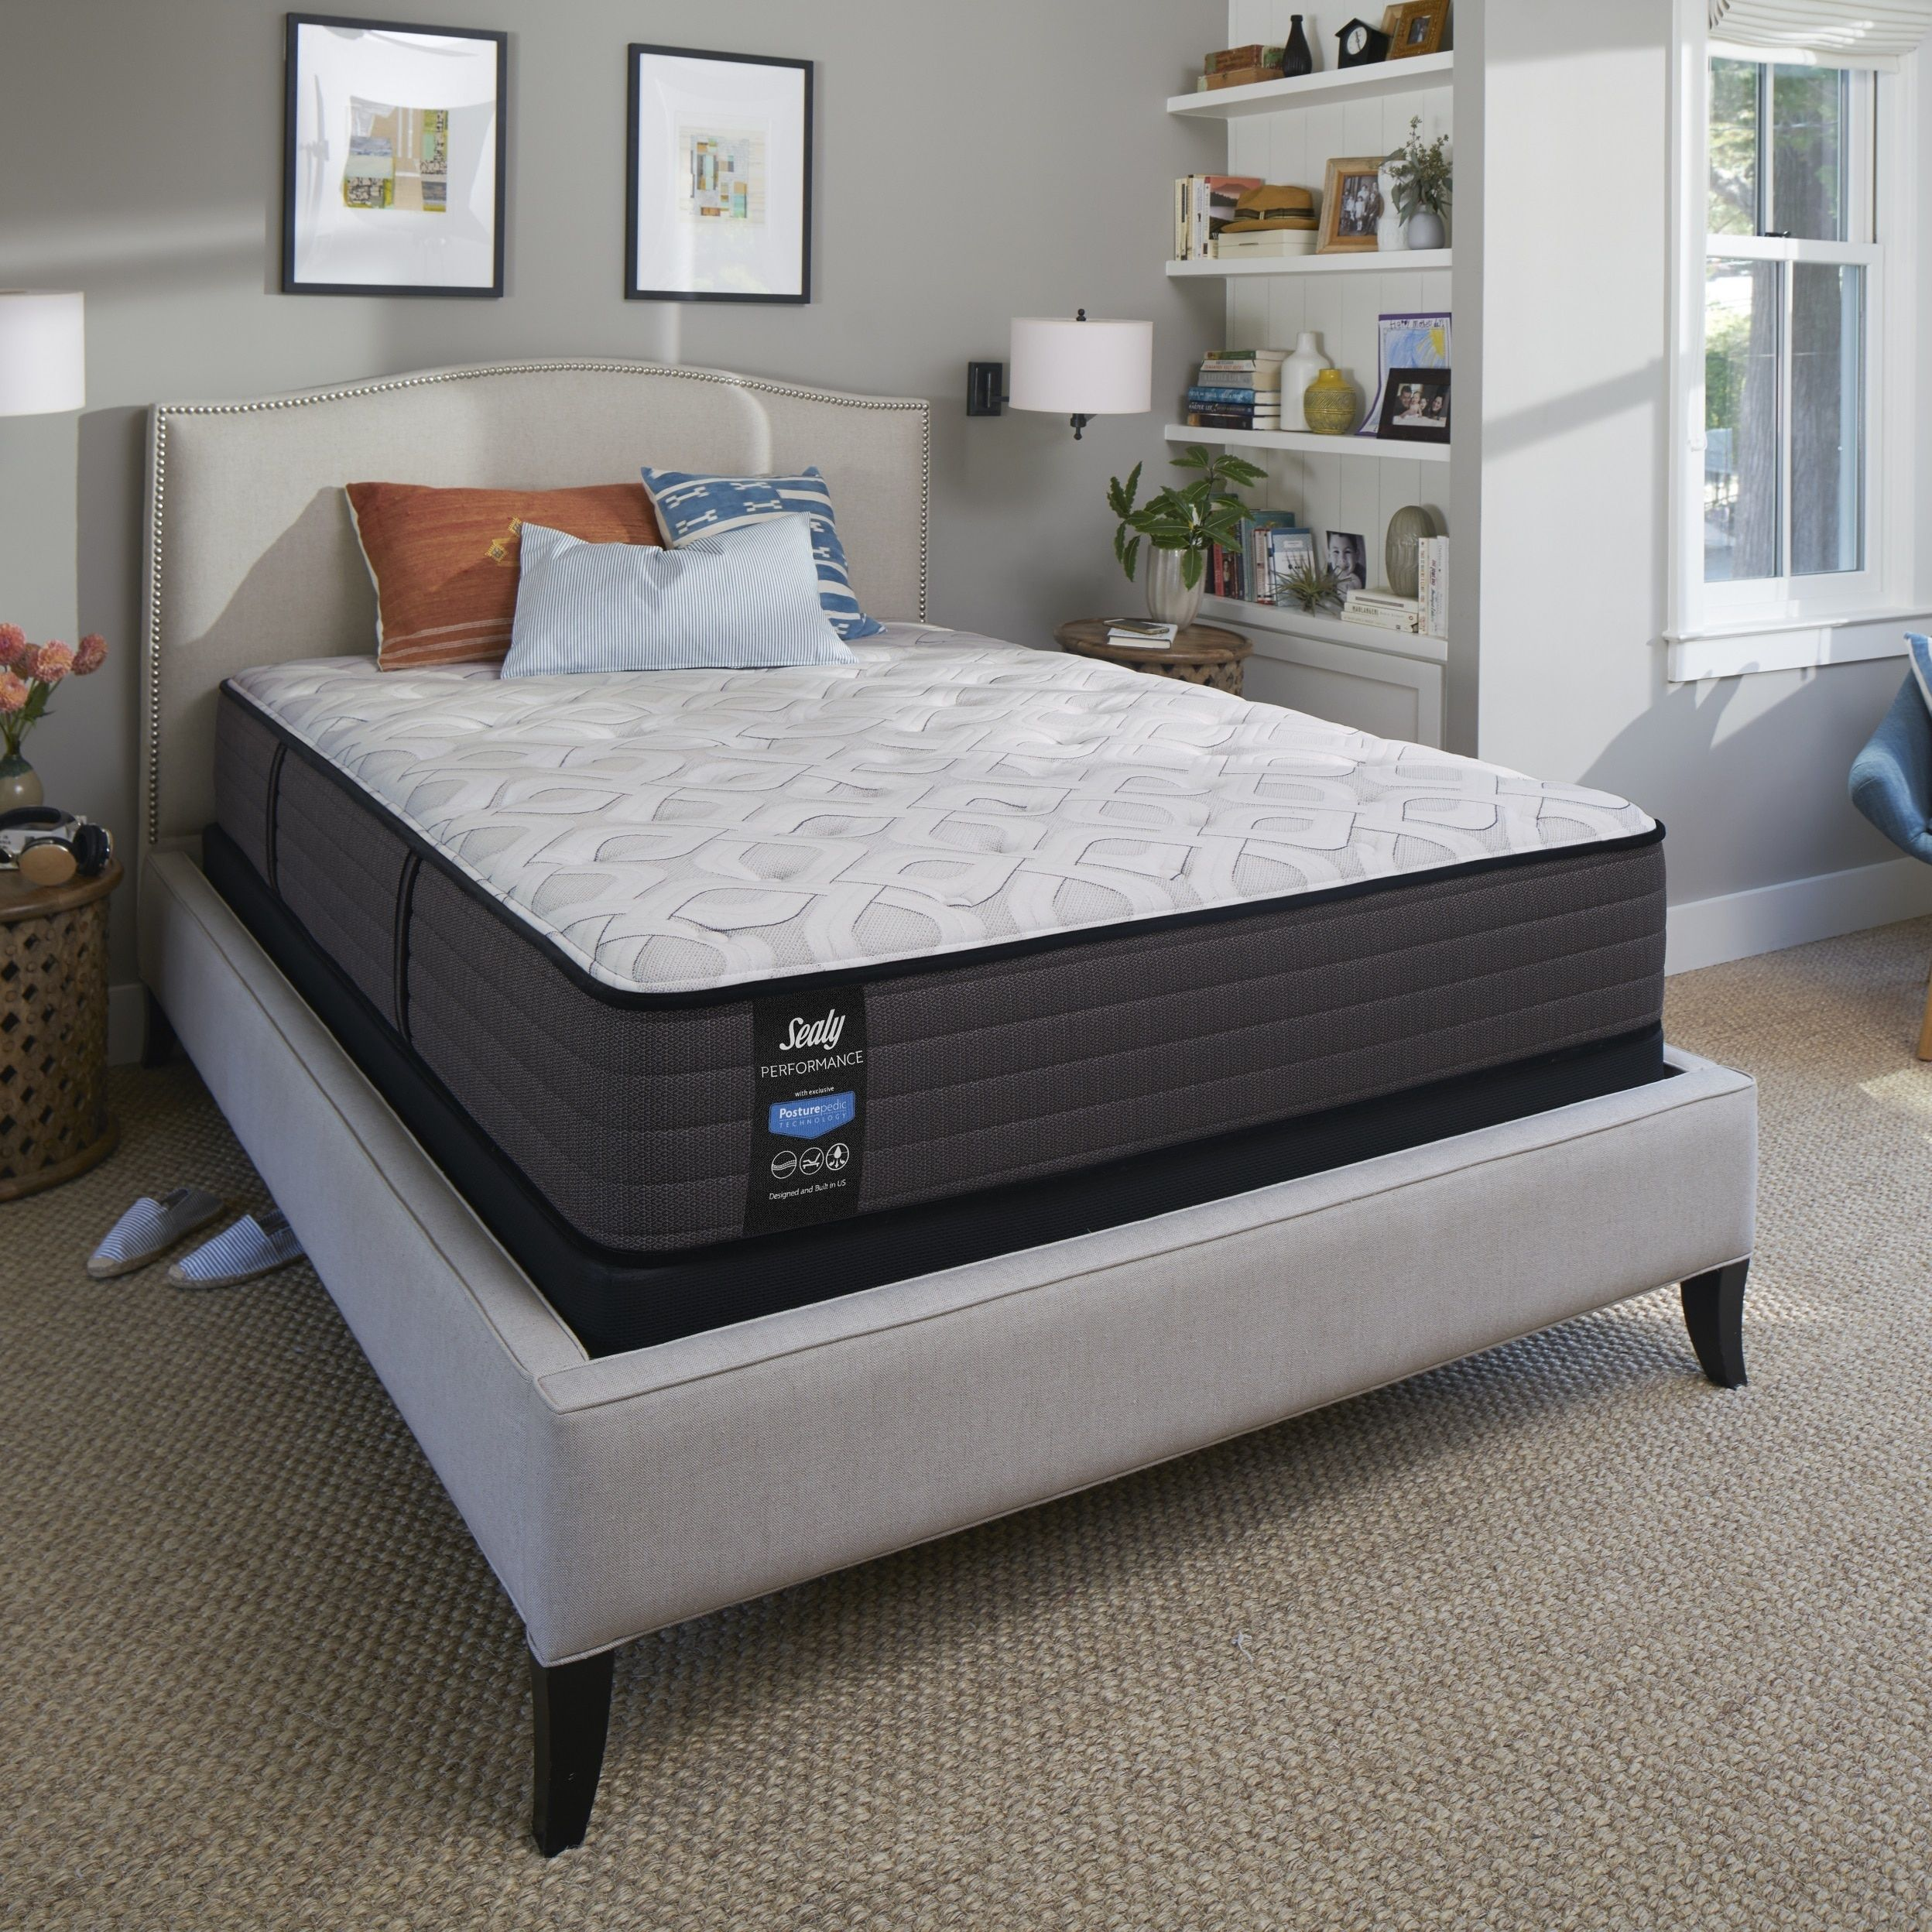 inch size performance pin king response with plush top split sealy tight mattress